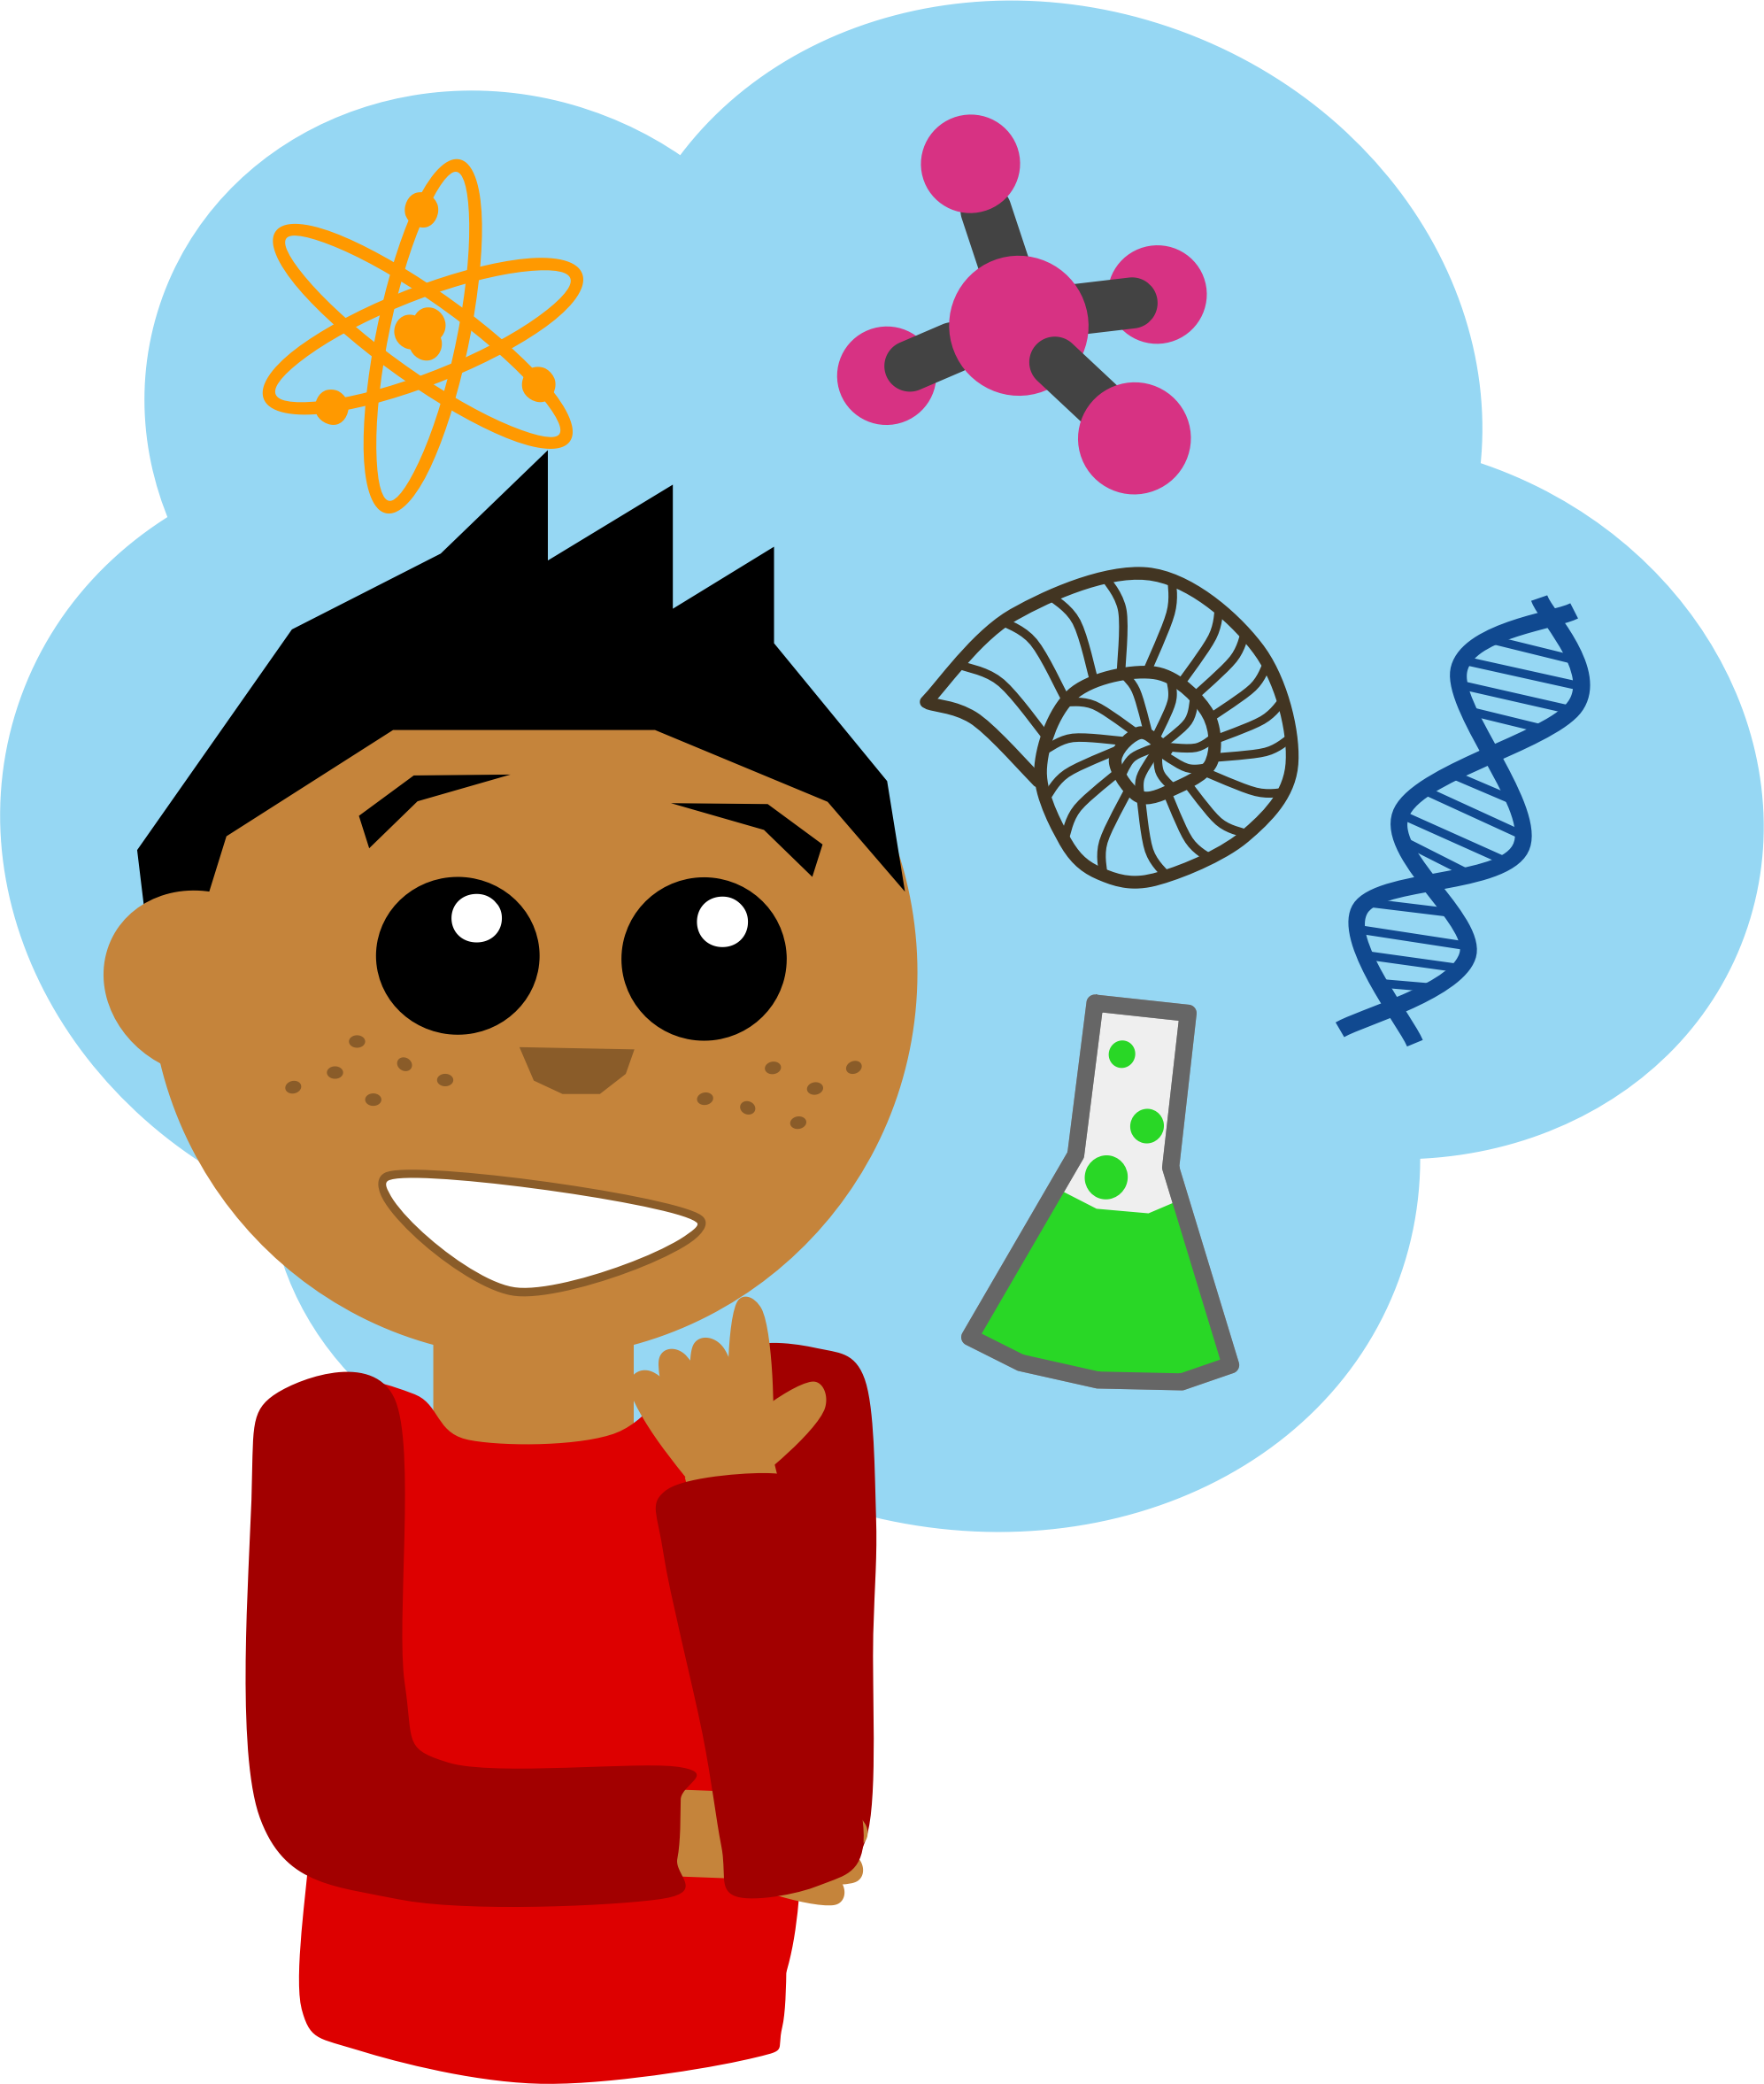 School clubs clipart image freeuse Our Science Page | Reddal Hill Primary School image freeuse